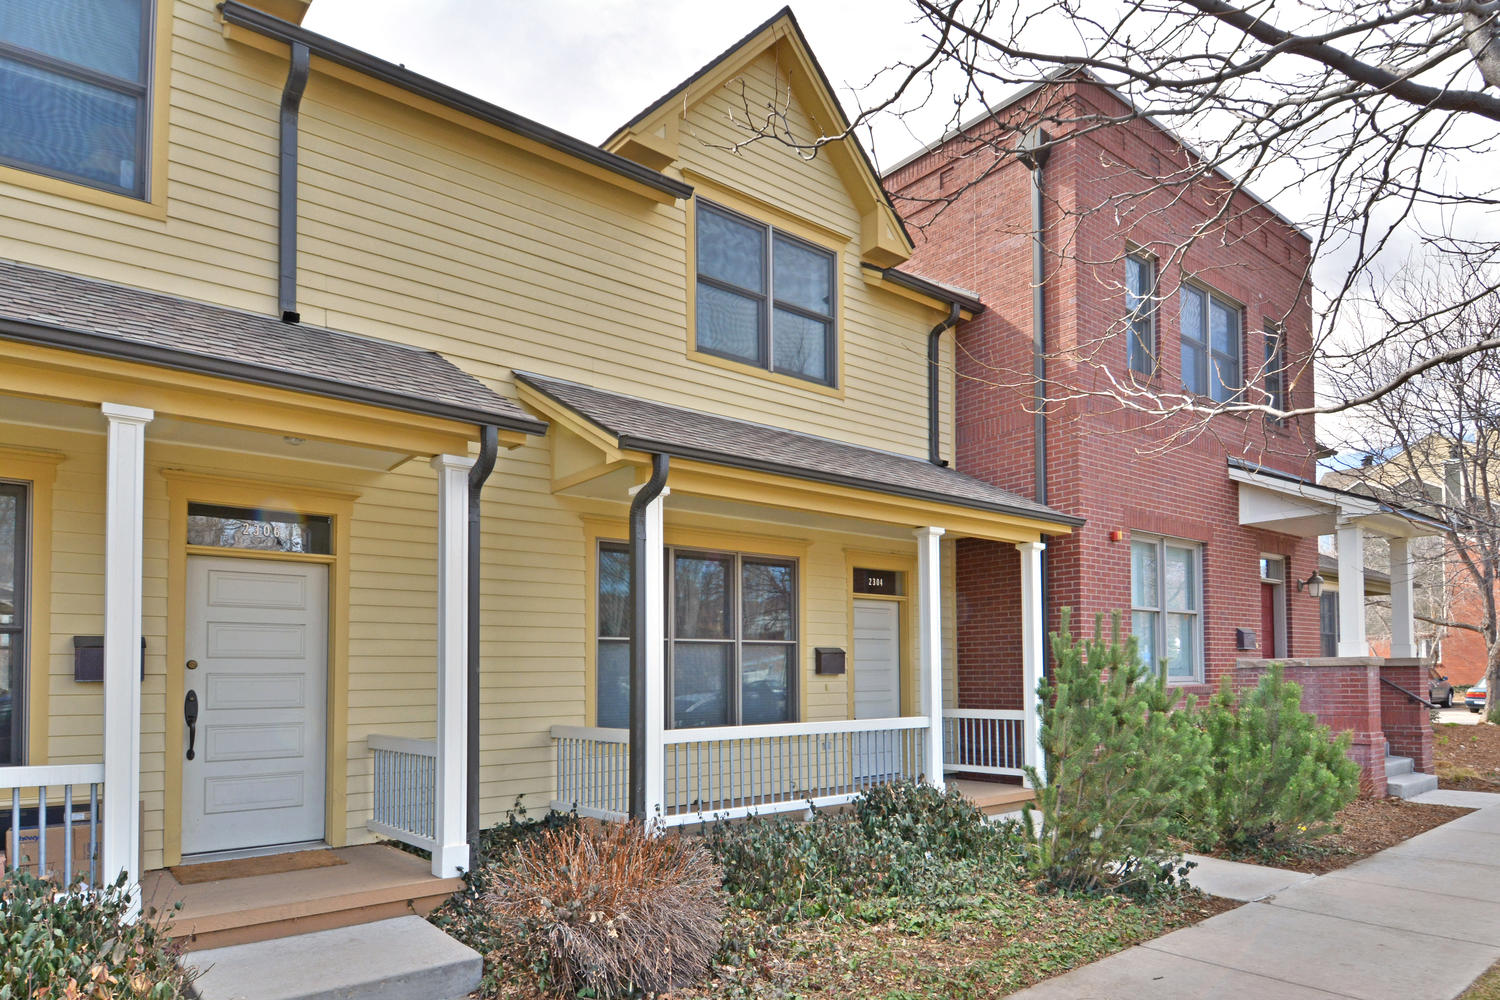 Townhouse for Sale at Beautiful 2-Story Townhouse. 2304 Spruce St 4 Boulder, Colorado, 80302 United States